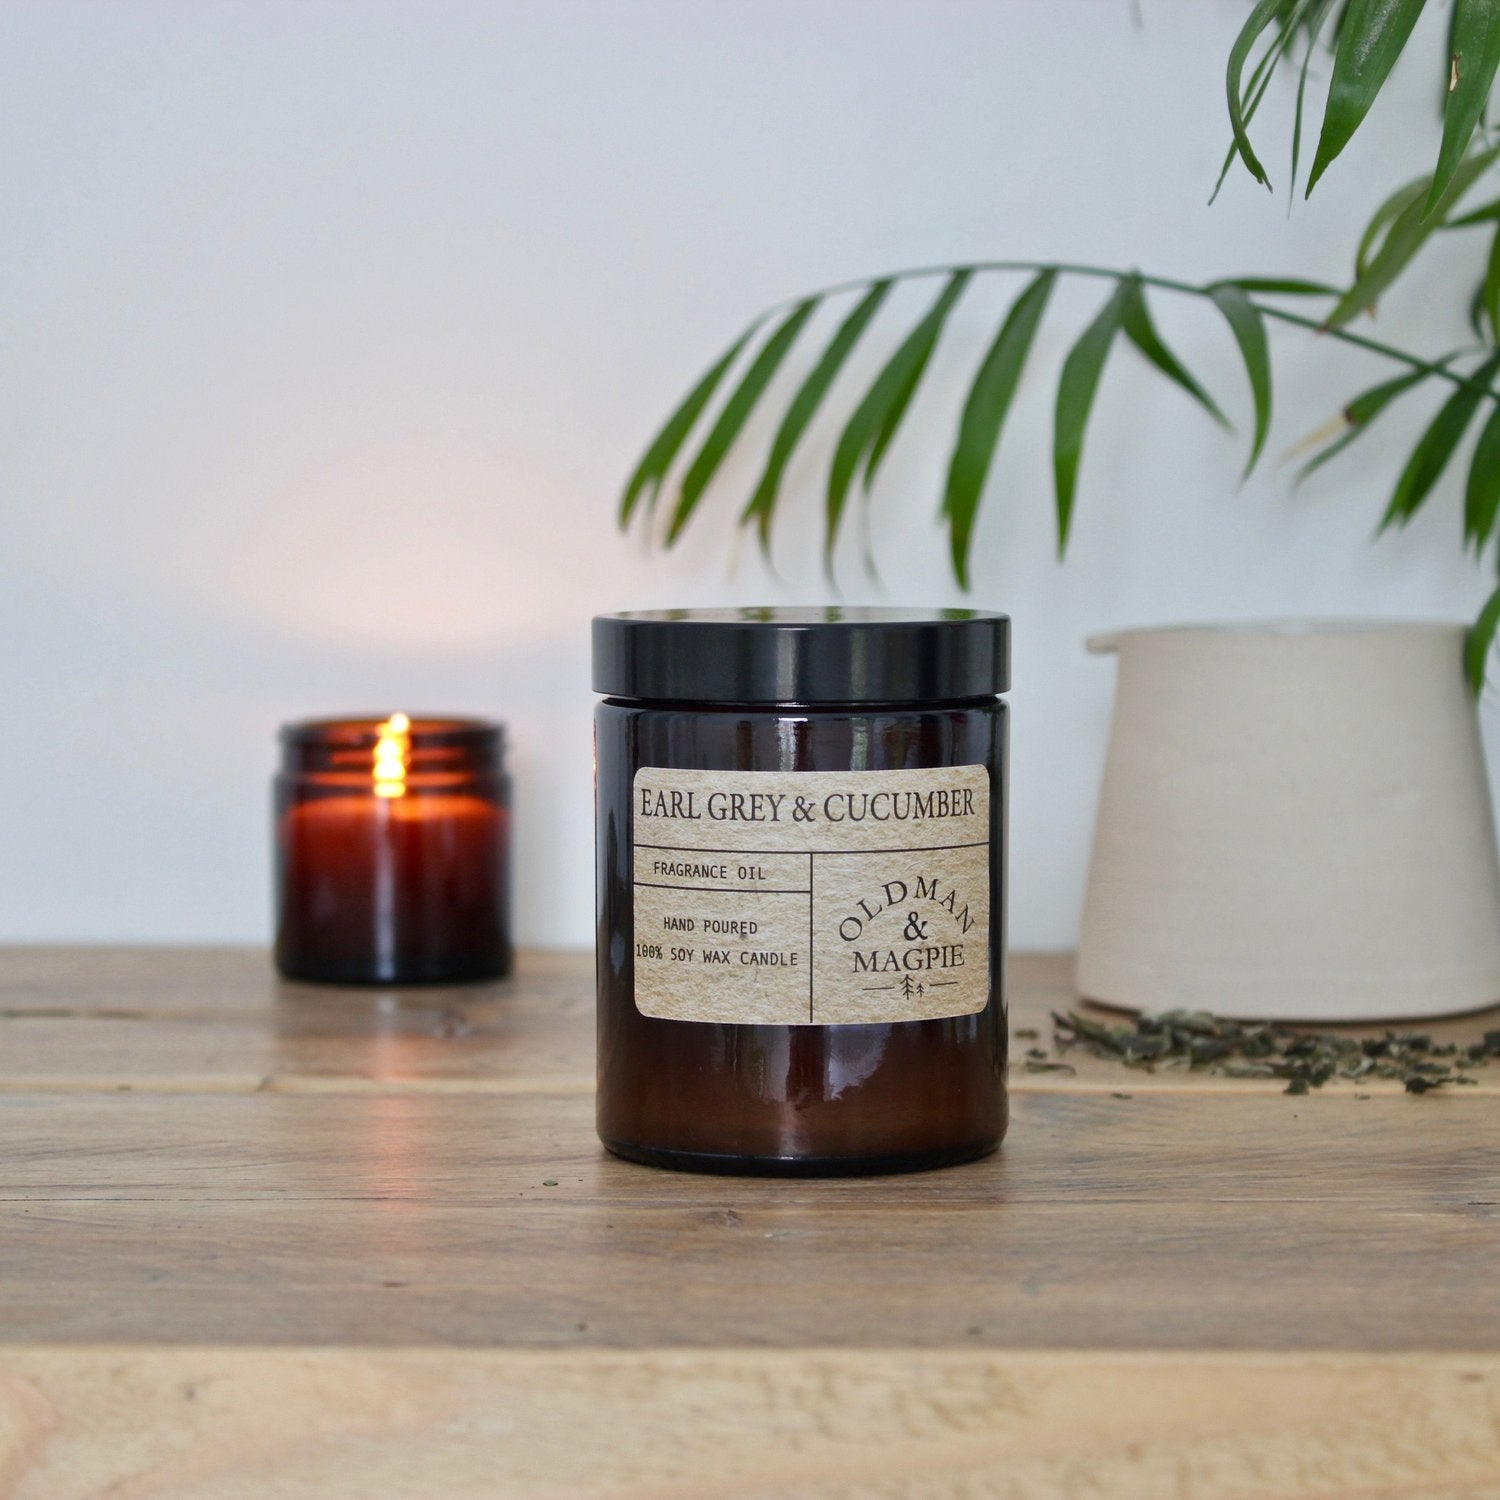 Old Man & Magpie 100% Natural Soy Wax Candle in Earl Grey & Cucumber